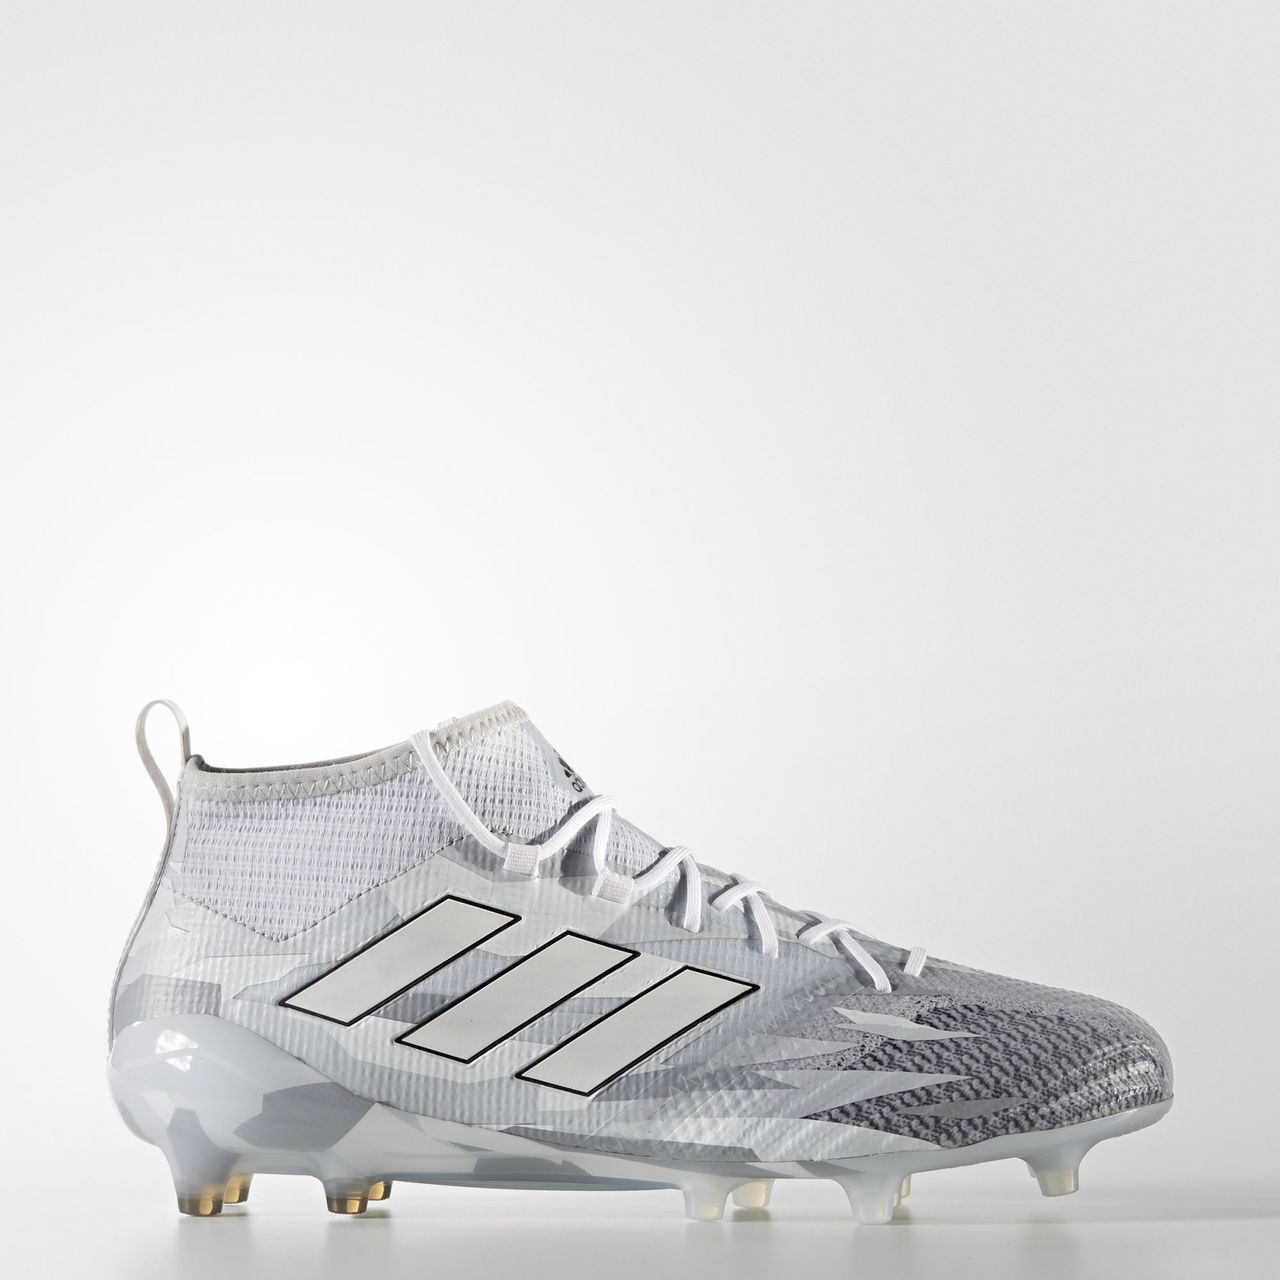 4bc1a4e44 Click to enlarge image  adidas ace 17 1 primeknit firm ground boots camouflage clear grey footwear white core black a.jpg  ...